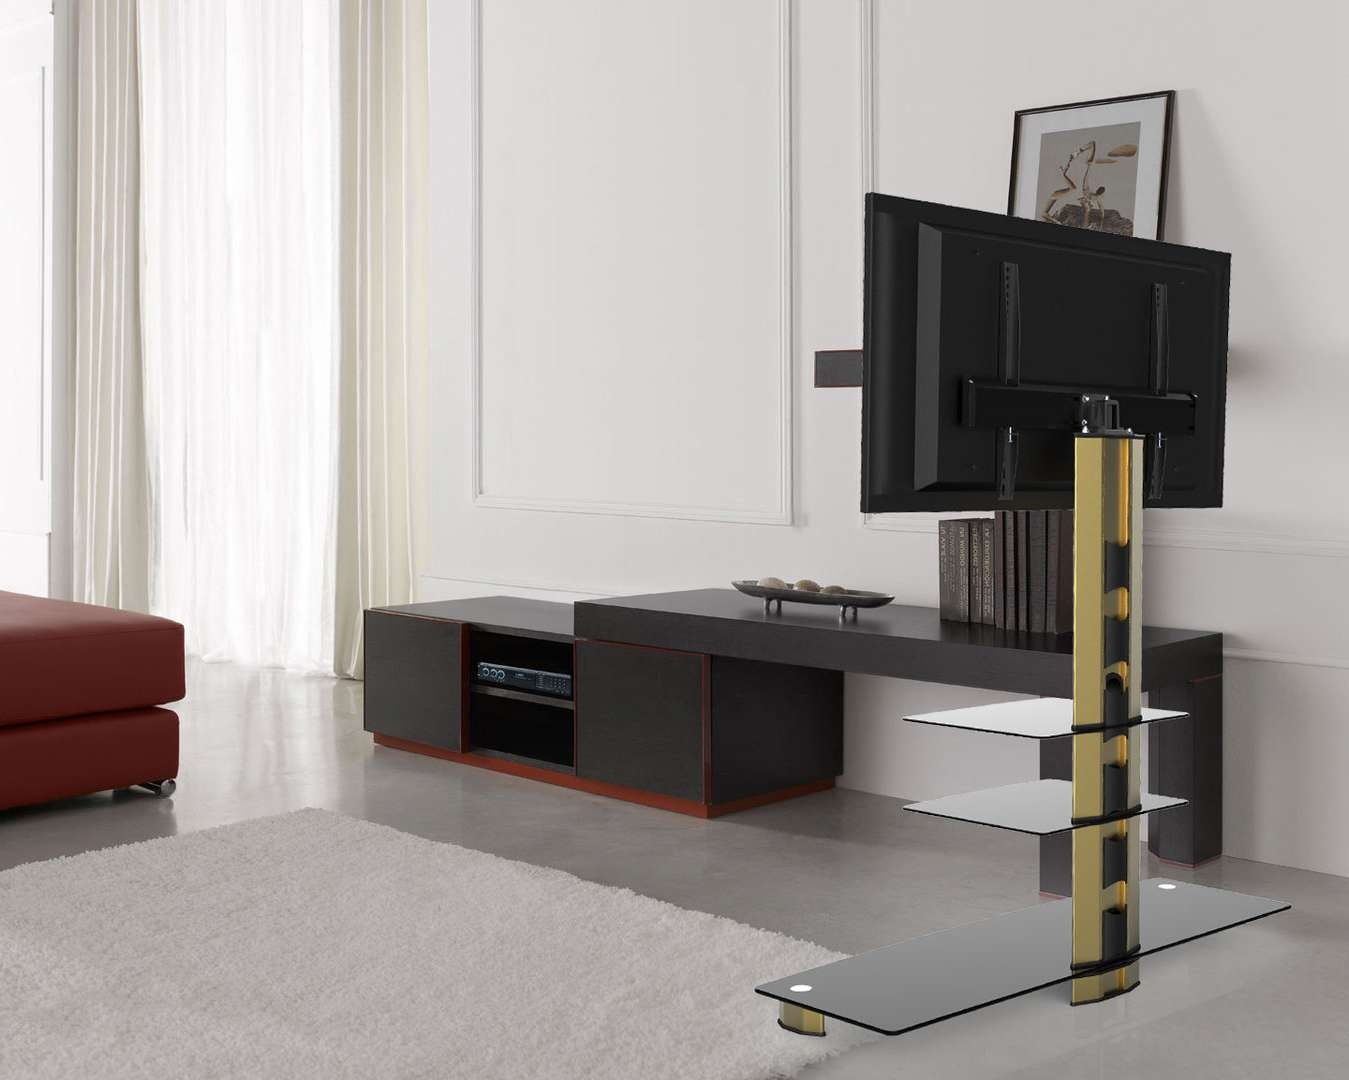 Gold Black Glass Tv Stand Bracket Cantilever 3 Black Shelves Within Gold Tv Stands (View 20 of 20)